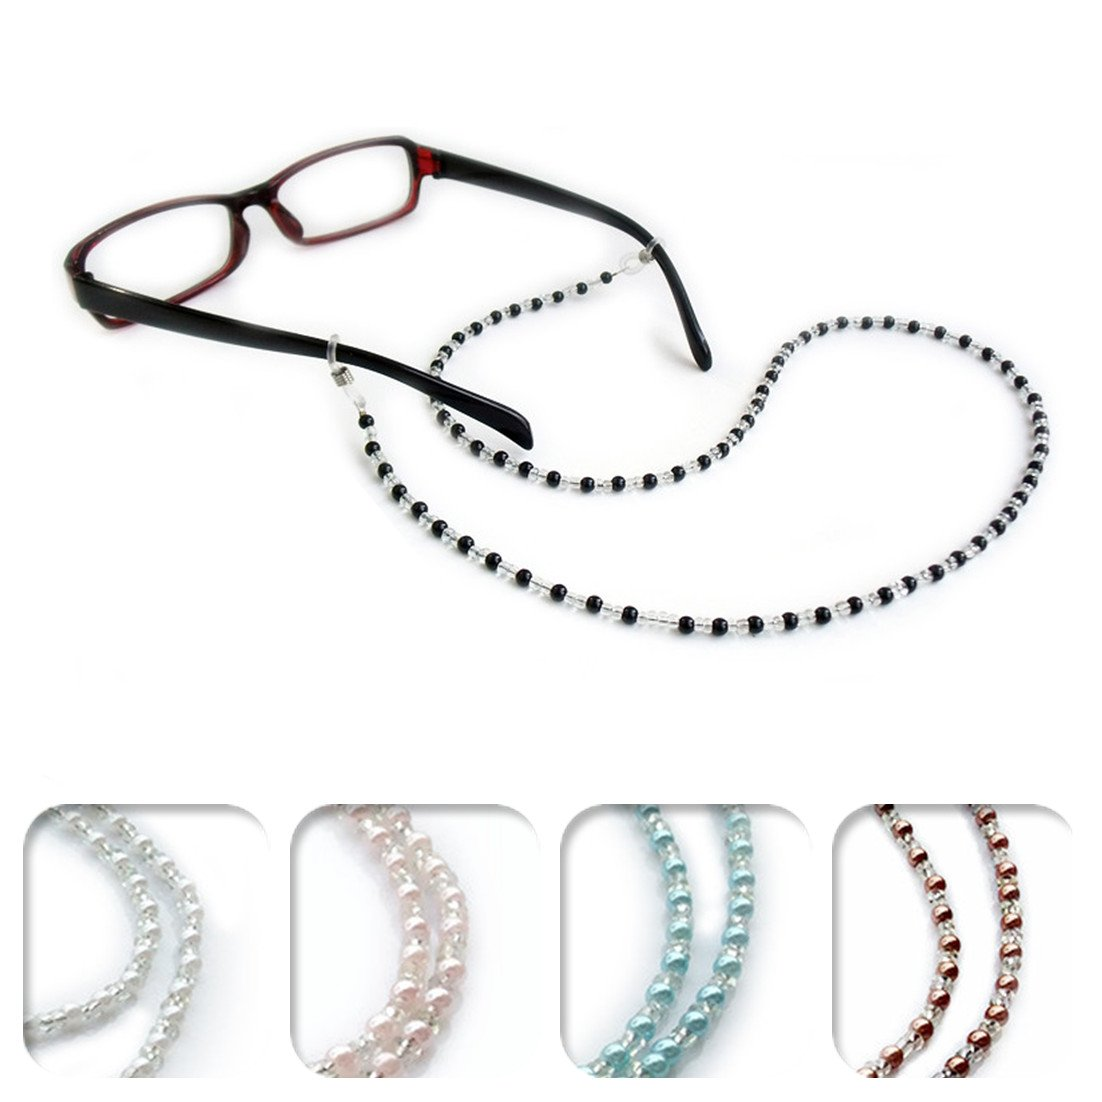 db17a9af12a Get Quotations · Kalevel Eyeglass Chain Holder Glasses Strap Eyeglass Chains  and Cords for Women